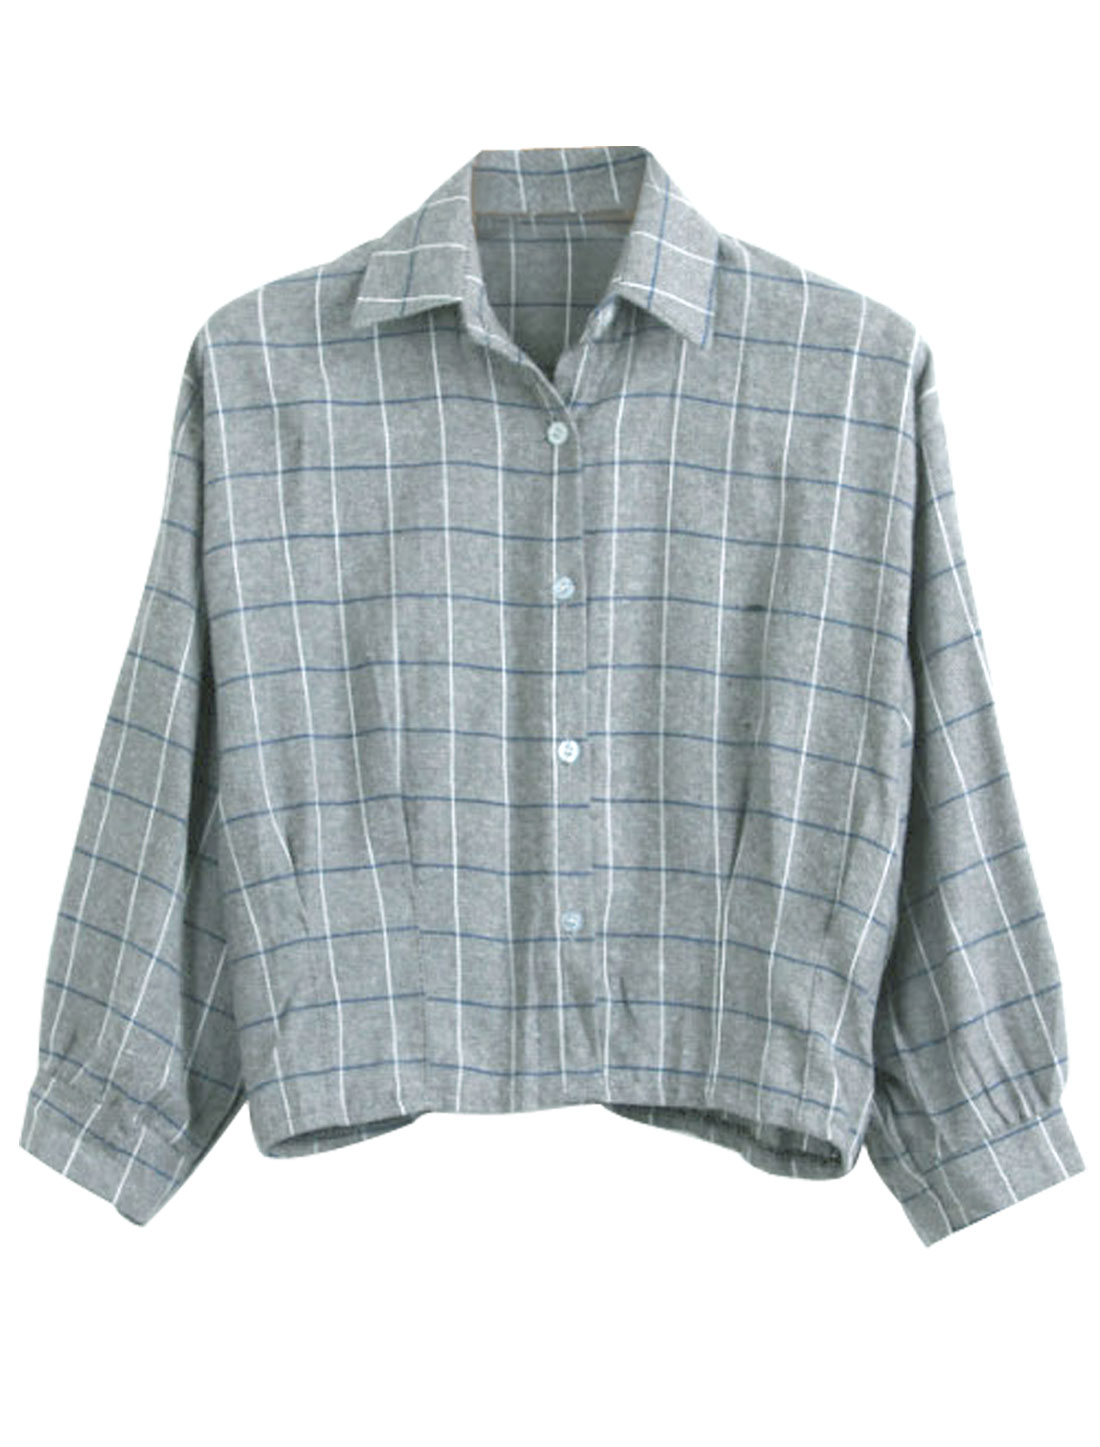 Lady Checks Pattern 3/4 Sleeve Leisure Shirt Gray S